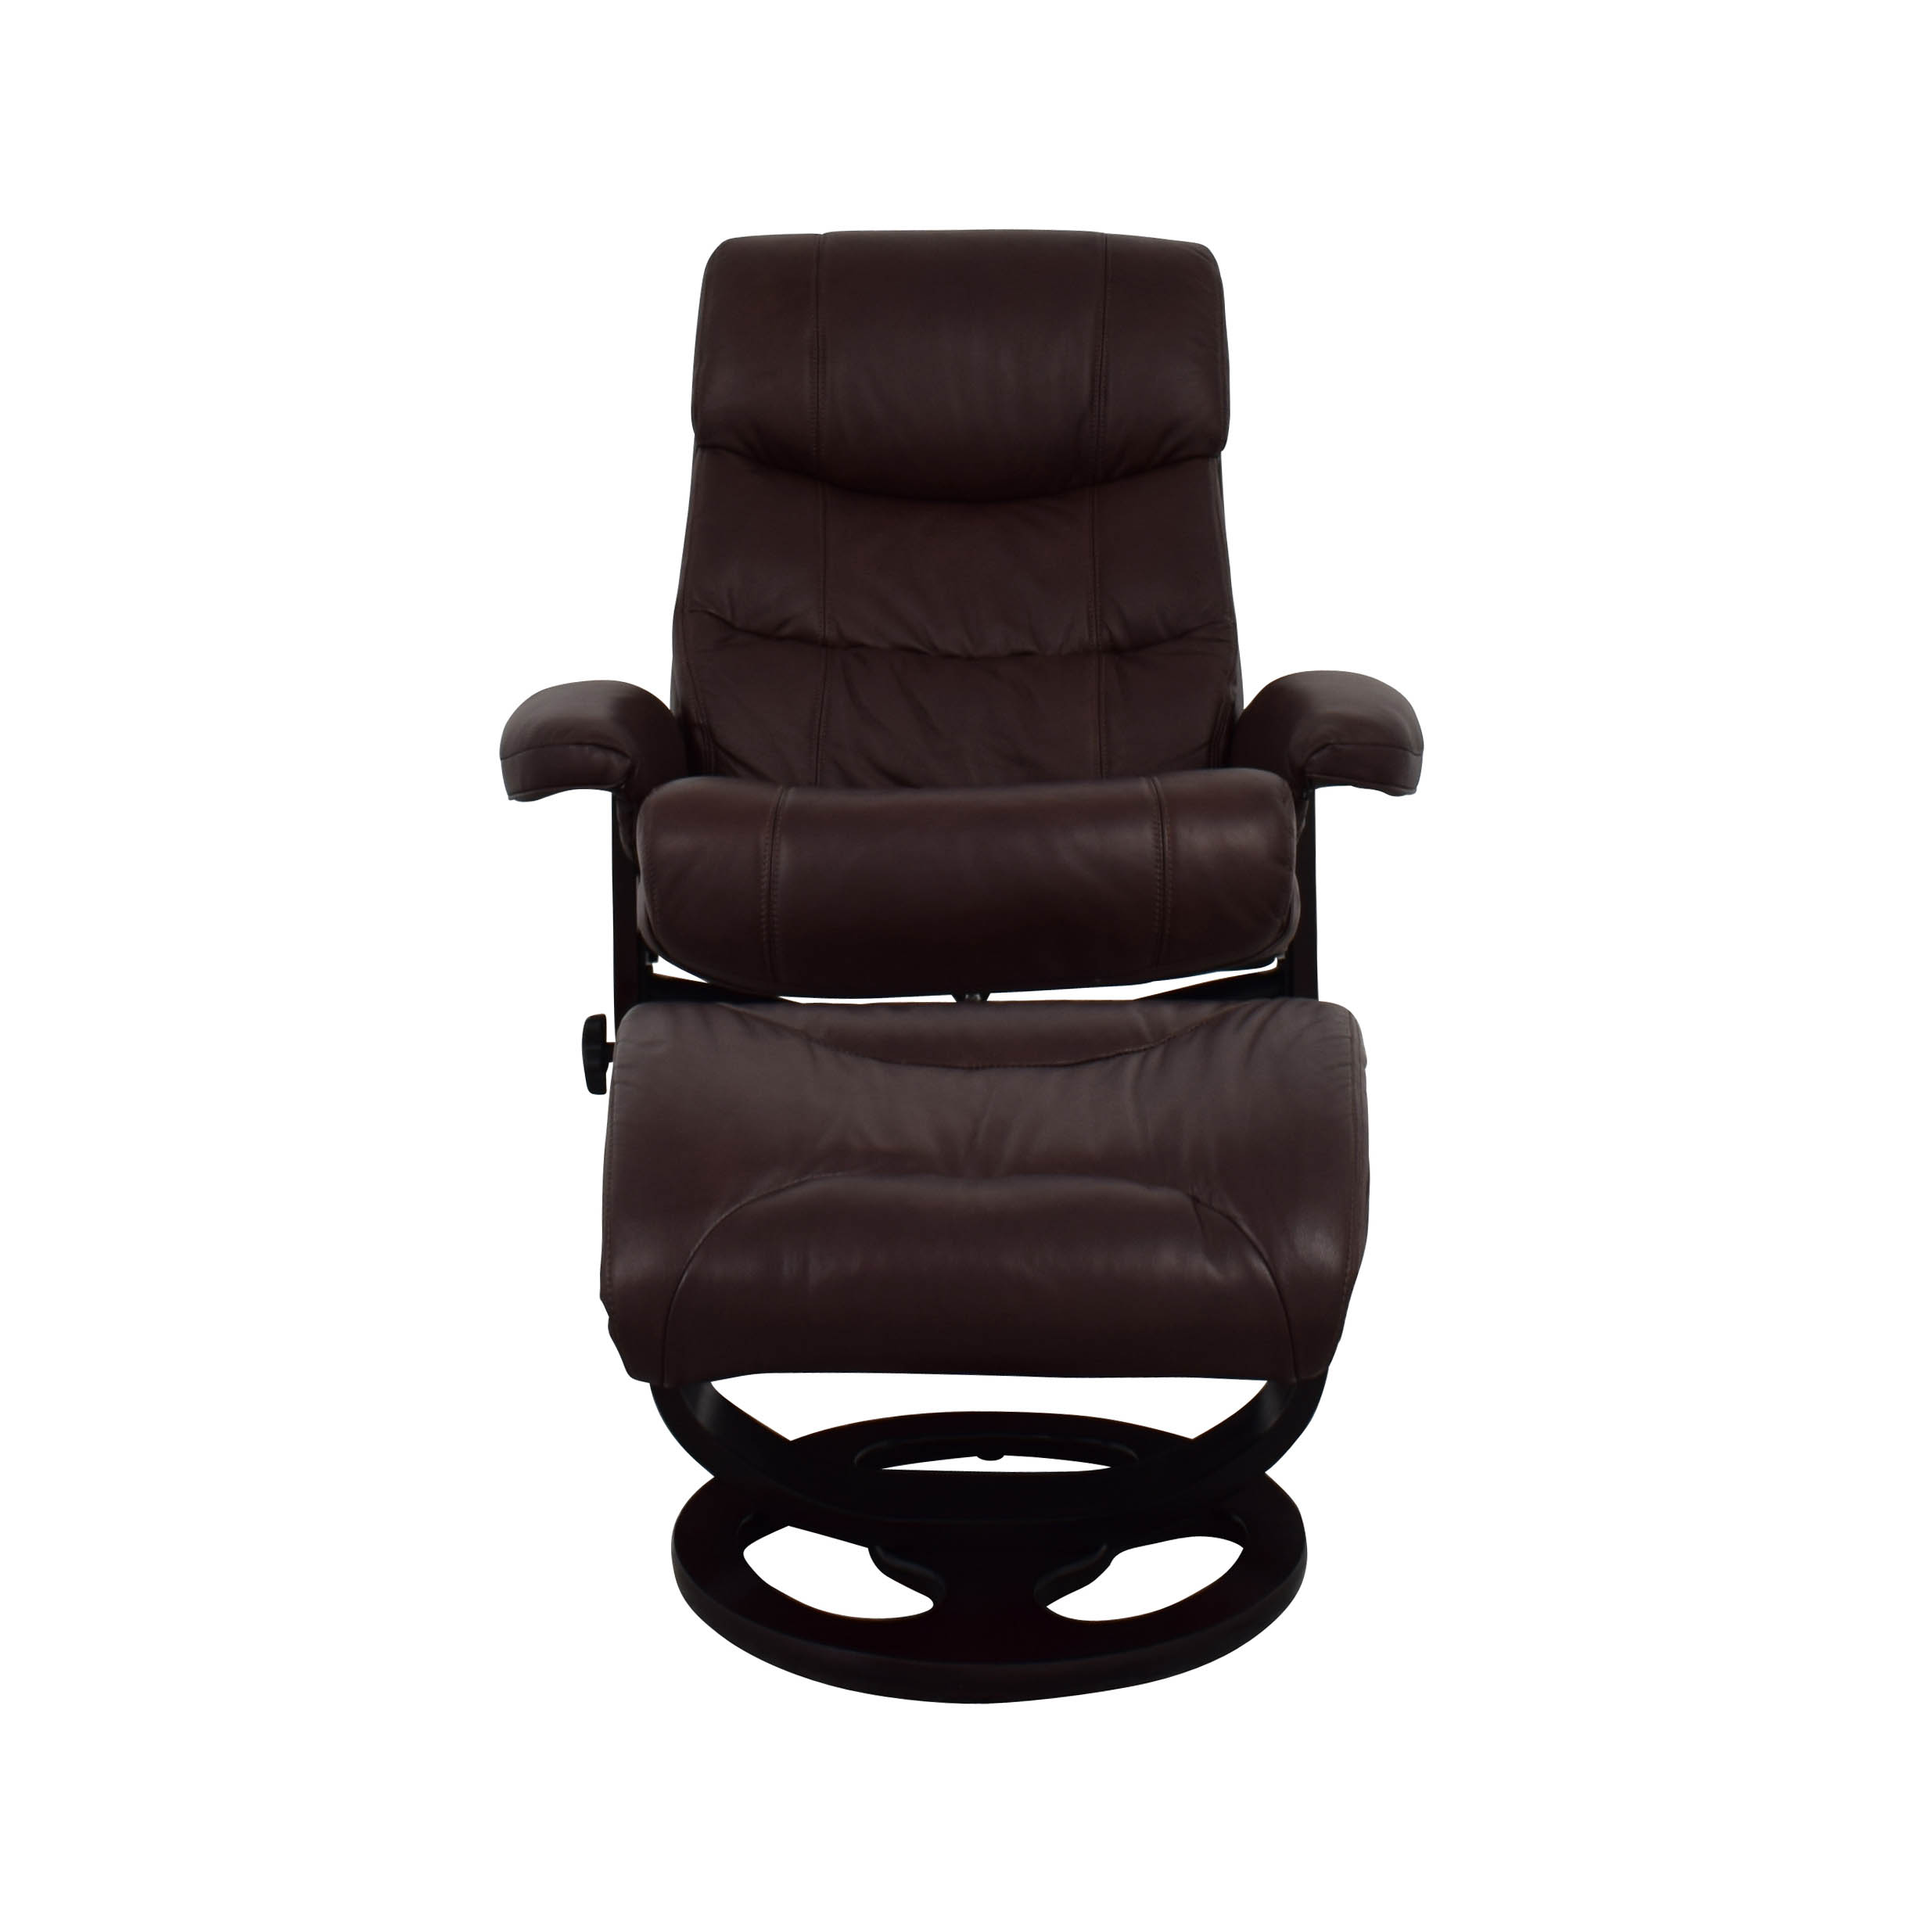 Leather Recliner Chair With Ottoman 59 Off Macy S Macy S Aby Brown Leather Recliner Chair Ottoman Chairs